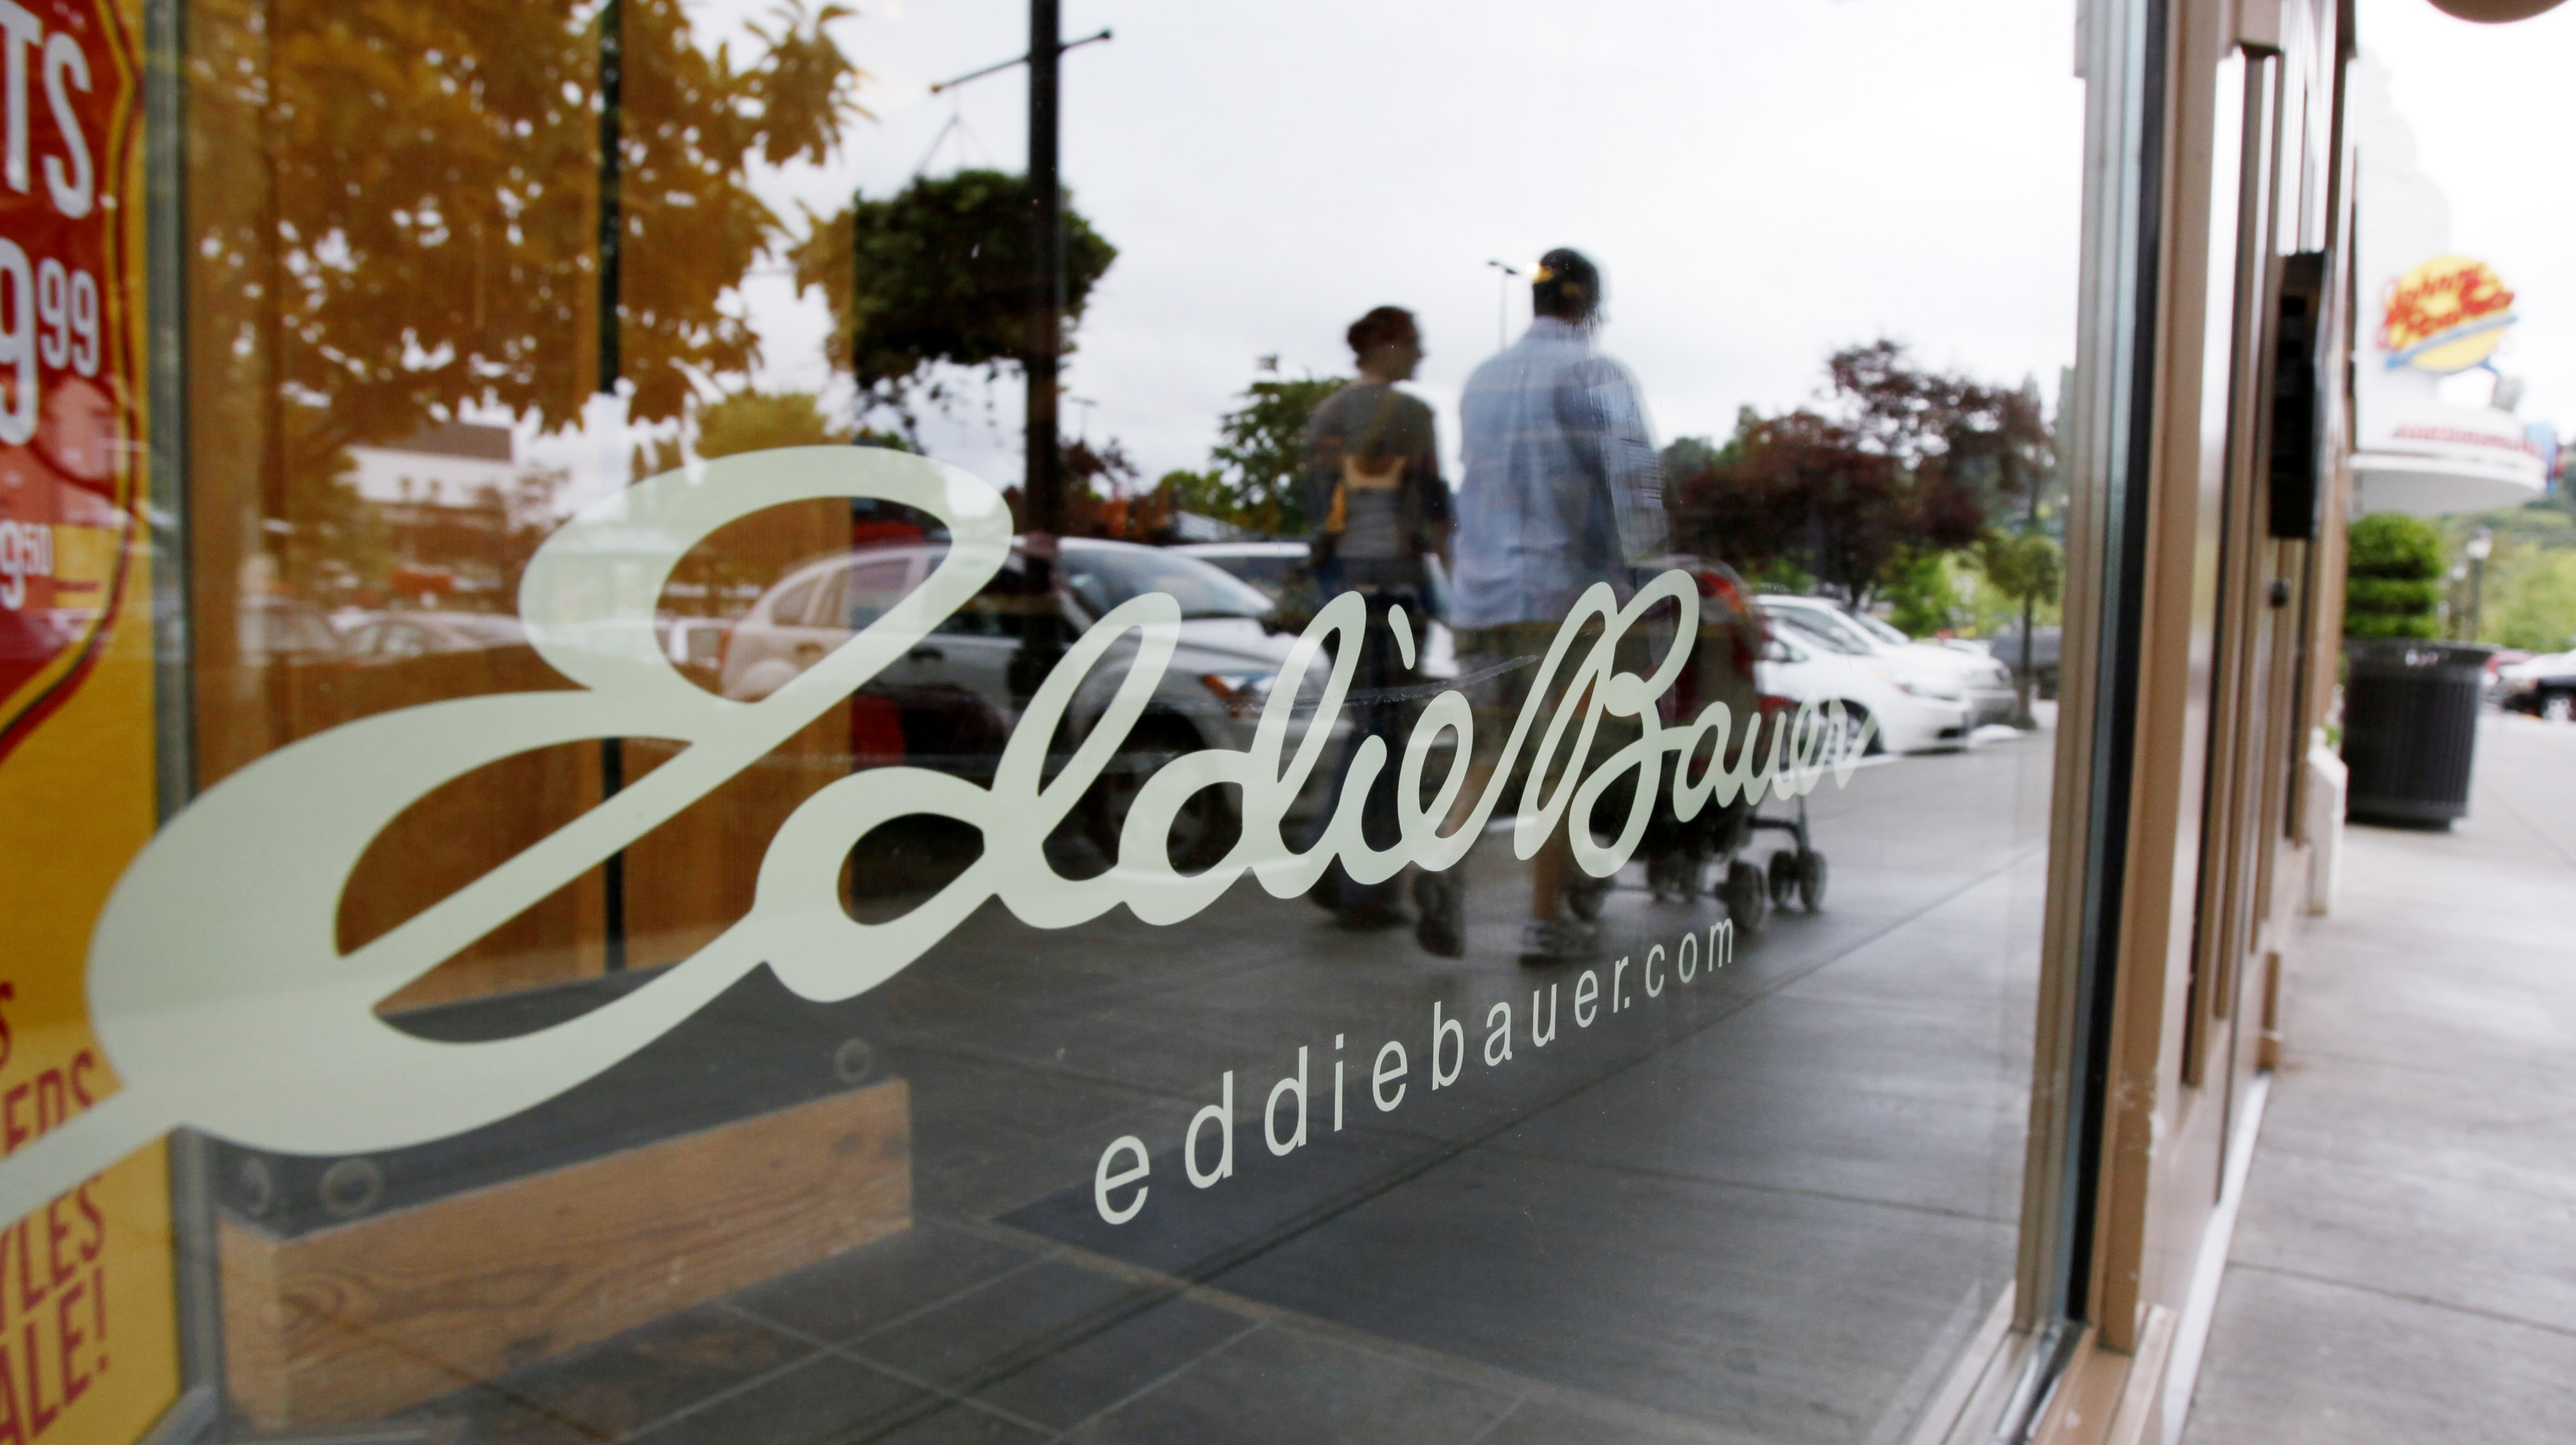 Jos. A. Bank Clothiers Inc. says it is buying the parent company of Eddie Bauer in a cash-and-stock deal valued at $825 million.